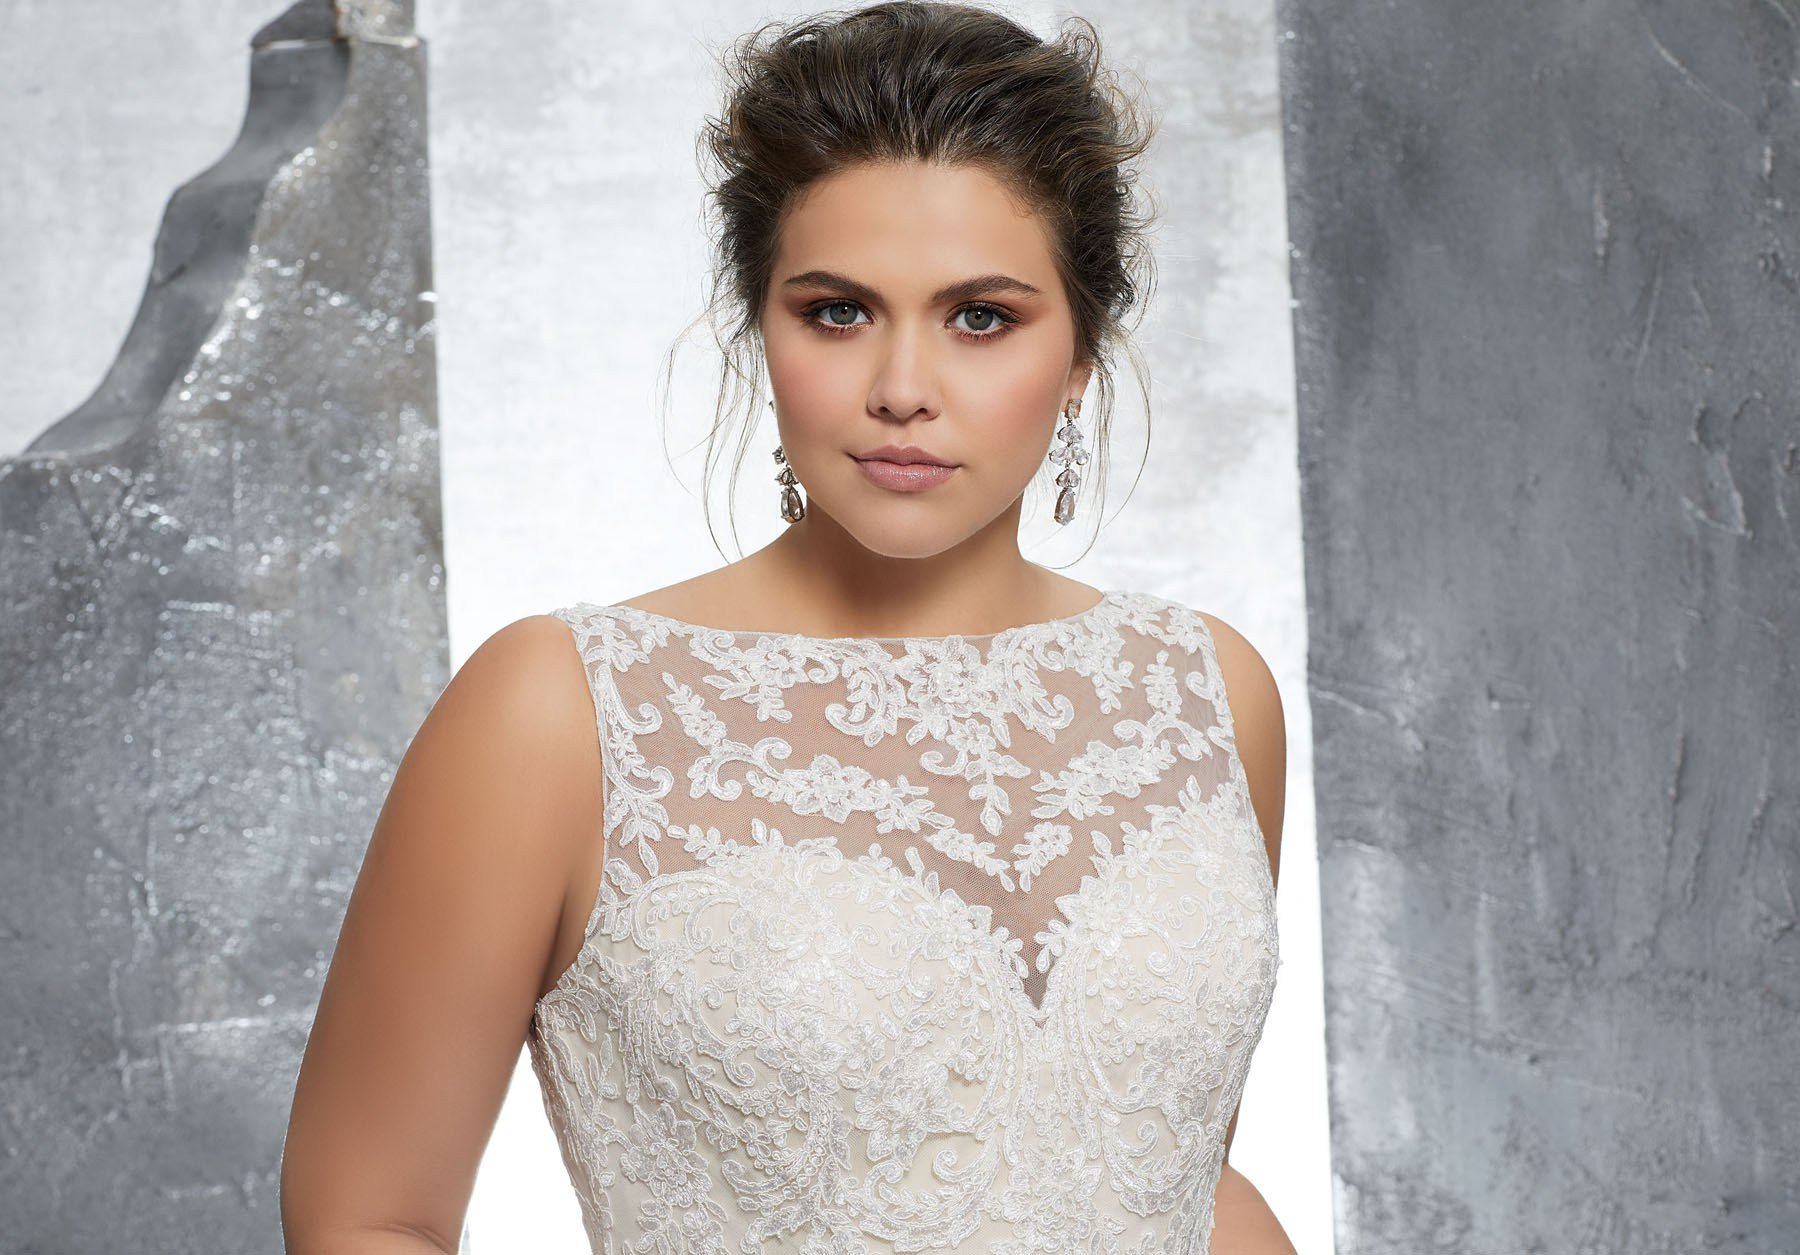 curvy couture plus size wedding dress curves ireland feel beautiful whatever your size